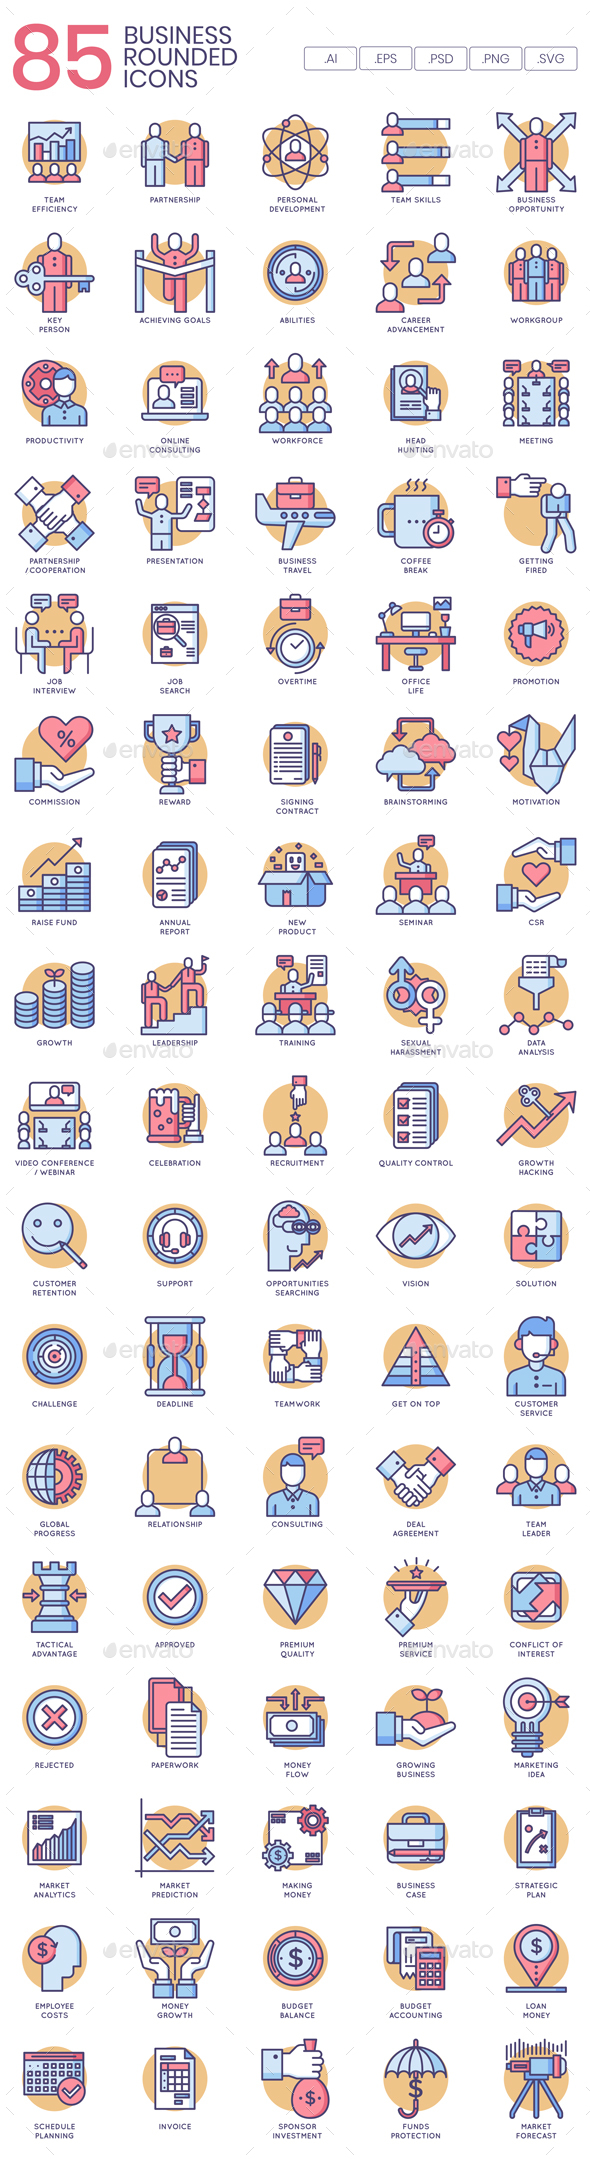 Business Icons - Rounded - Business Icons